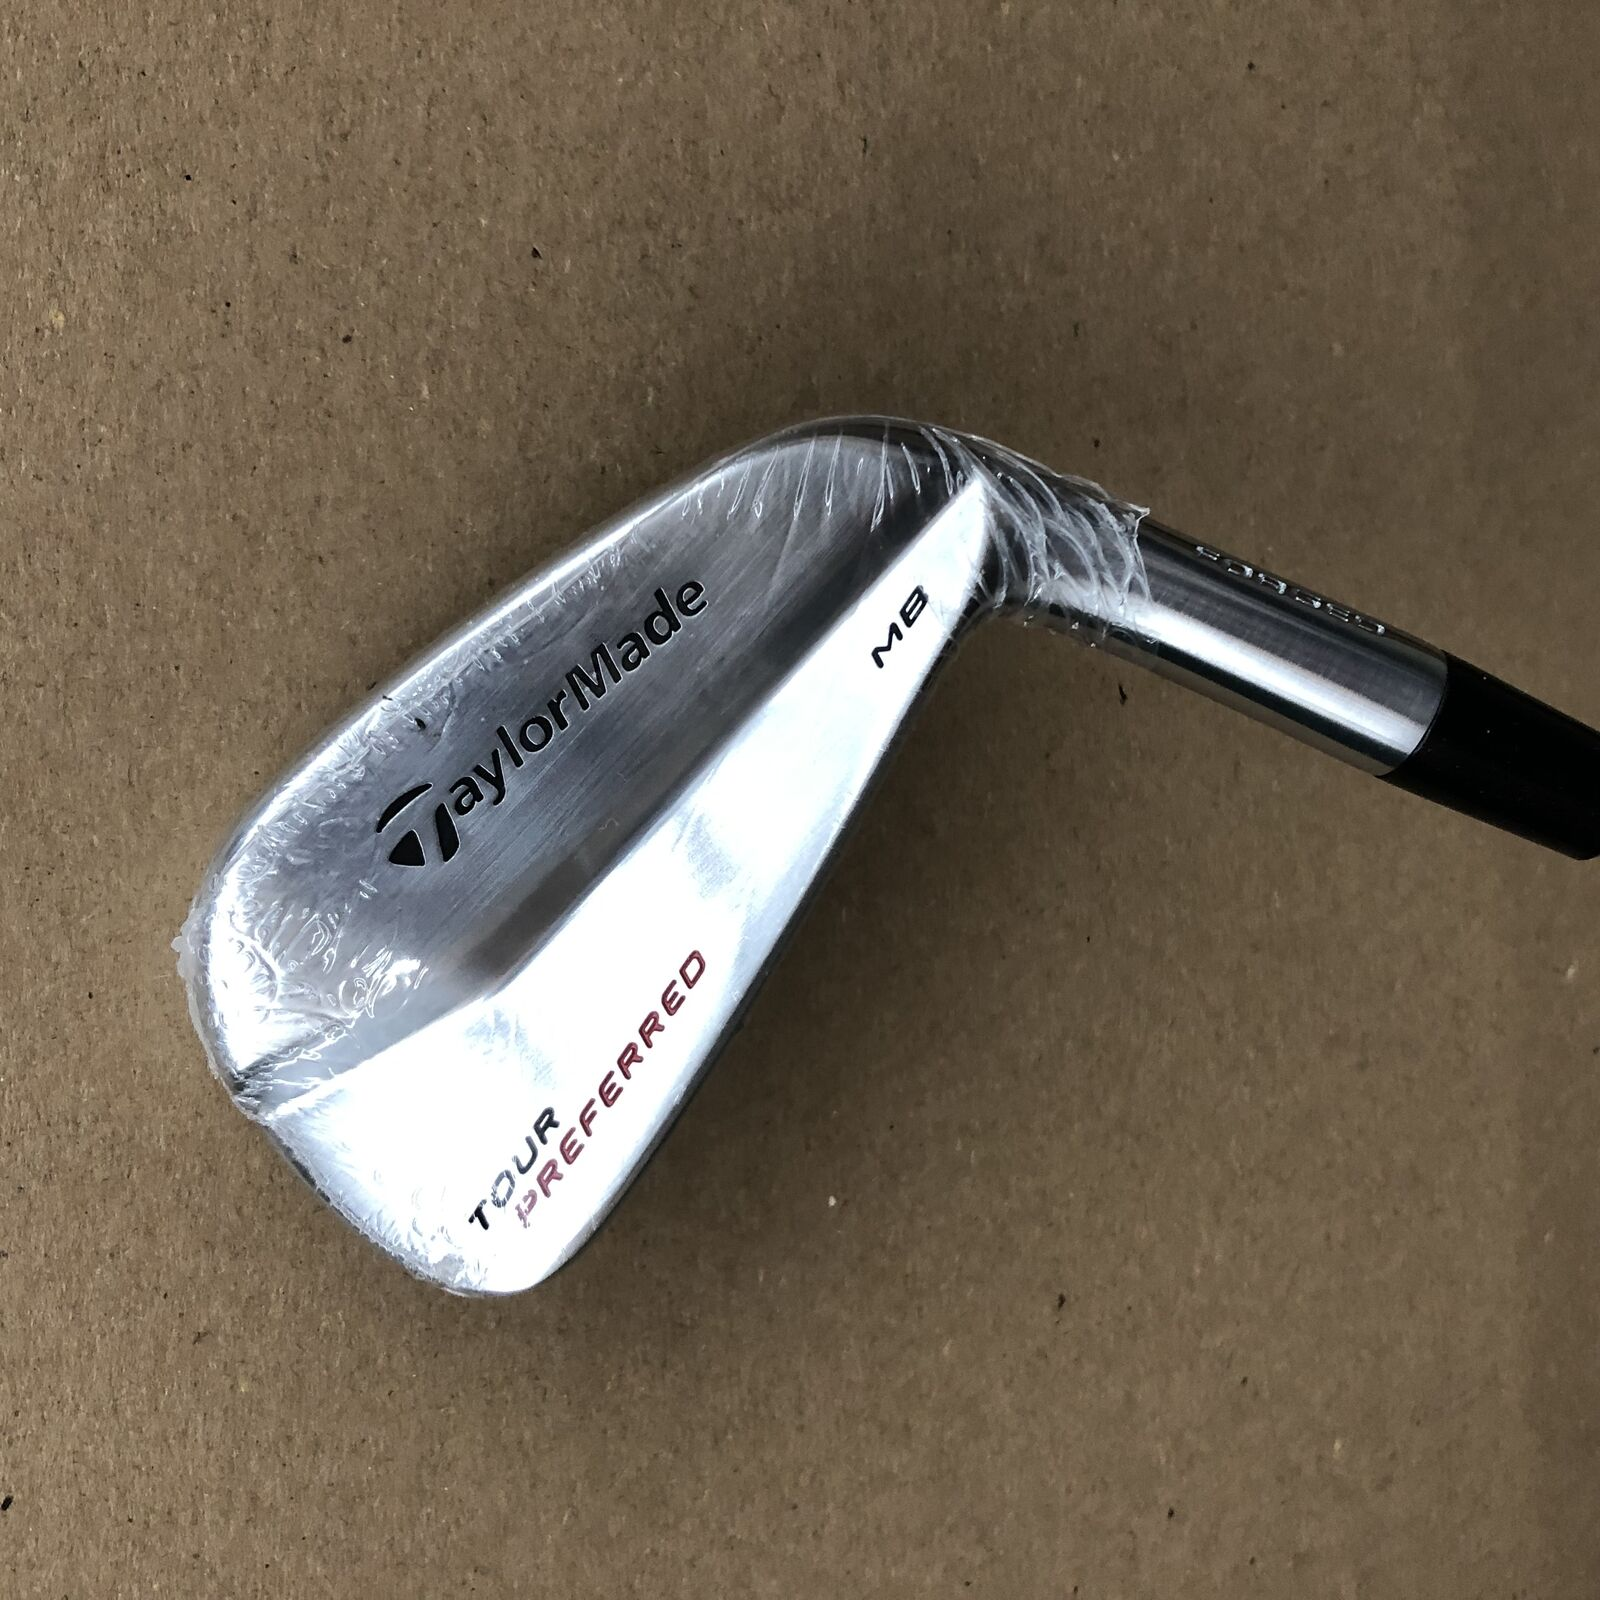 New TaylorMade 2014 Mb Tp  3 single de  hierro acero GS95 regular Flex Lamkin Agarre  precios al por mayor